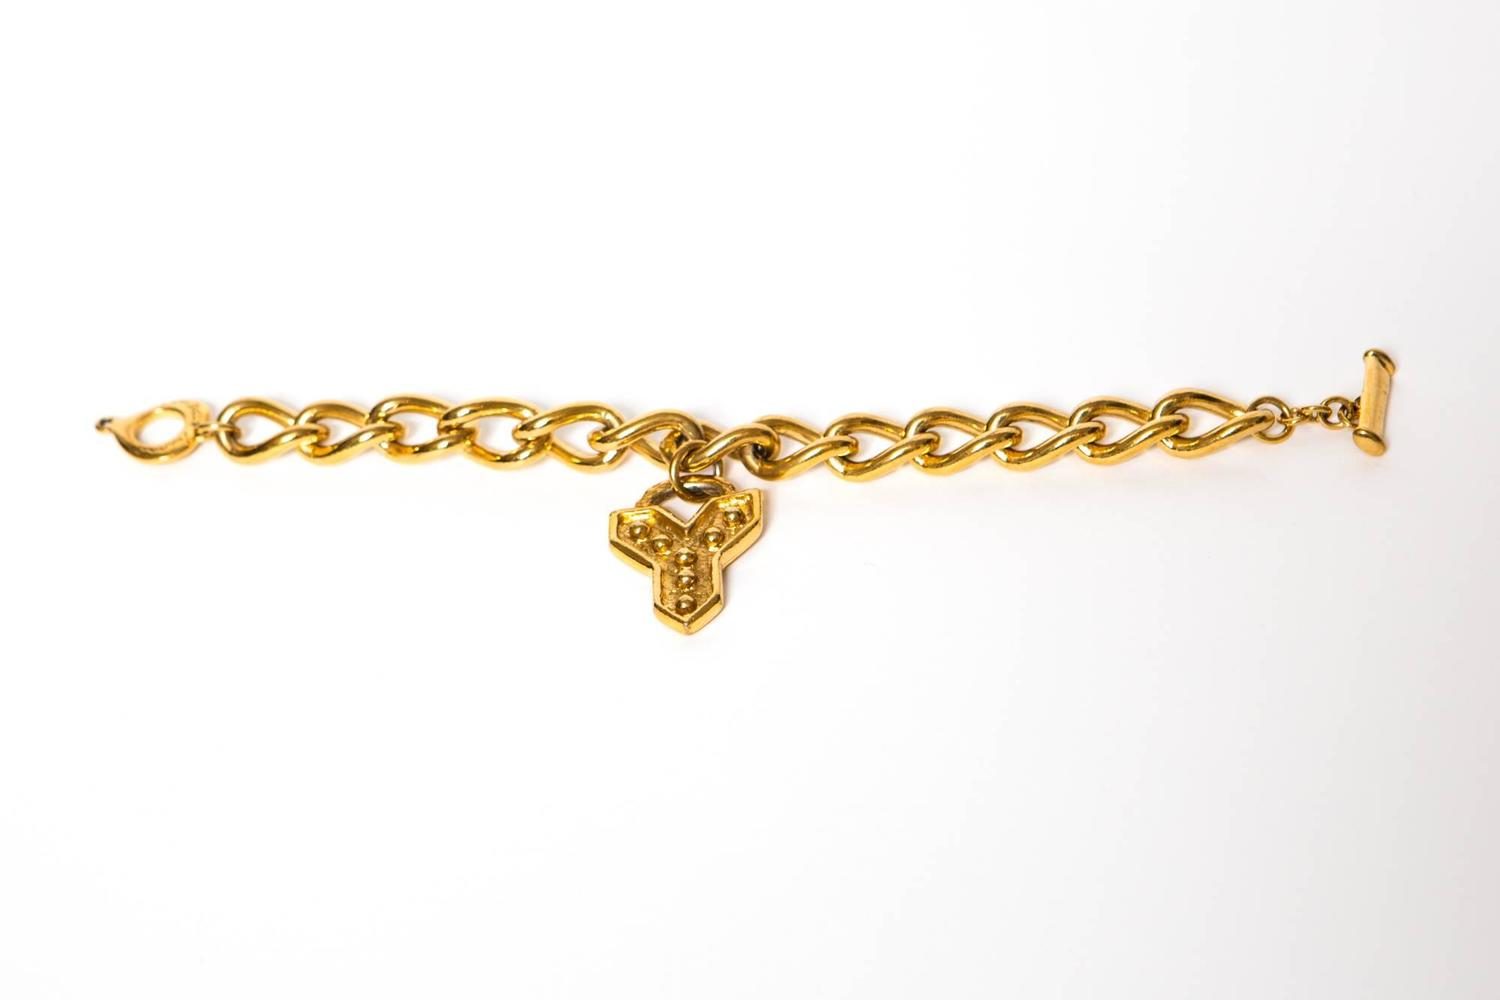 1980s yves saint laurent gold tone bracelet at 1stdibs - Bracelet yves saint laurent ...